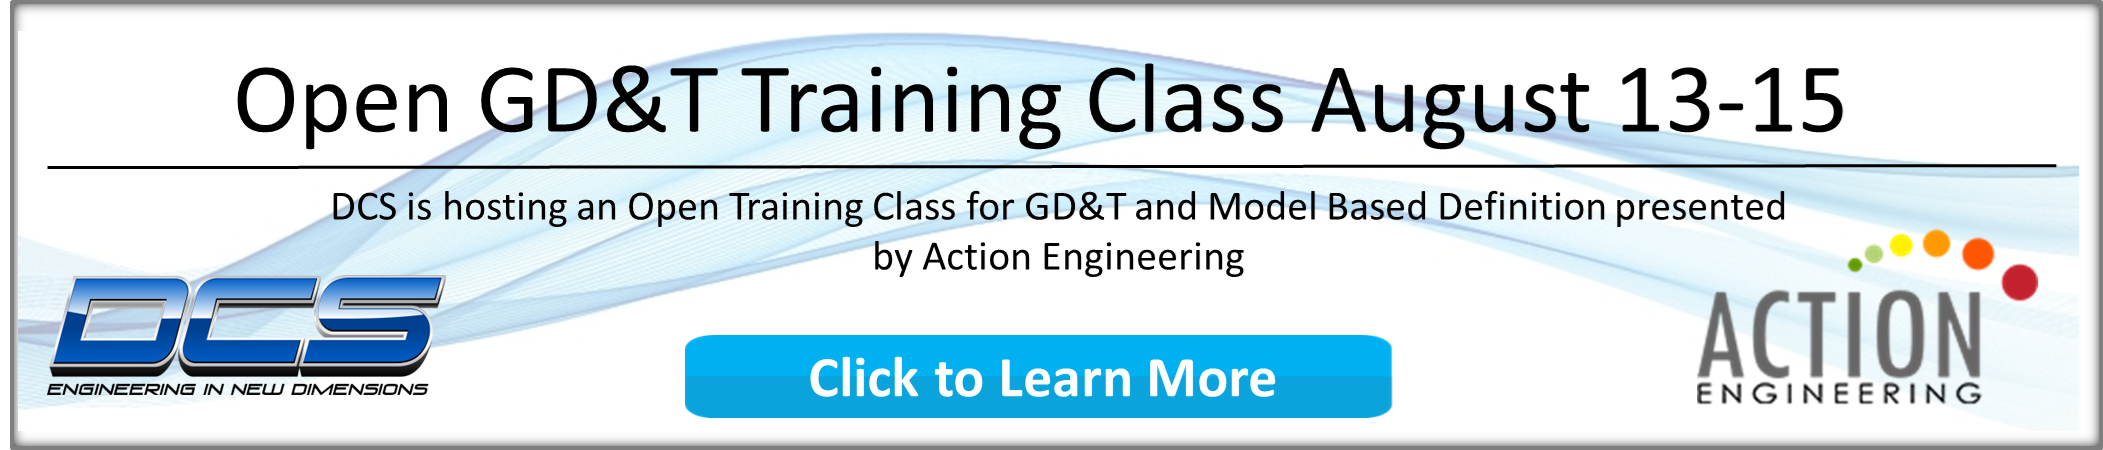 GD&T and MBD Open Training Coming August 13-15, 2019